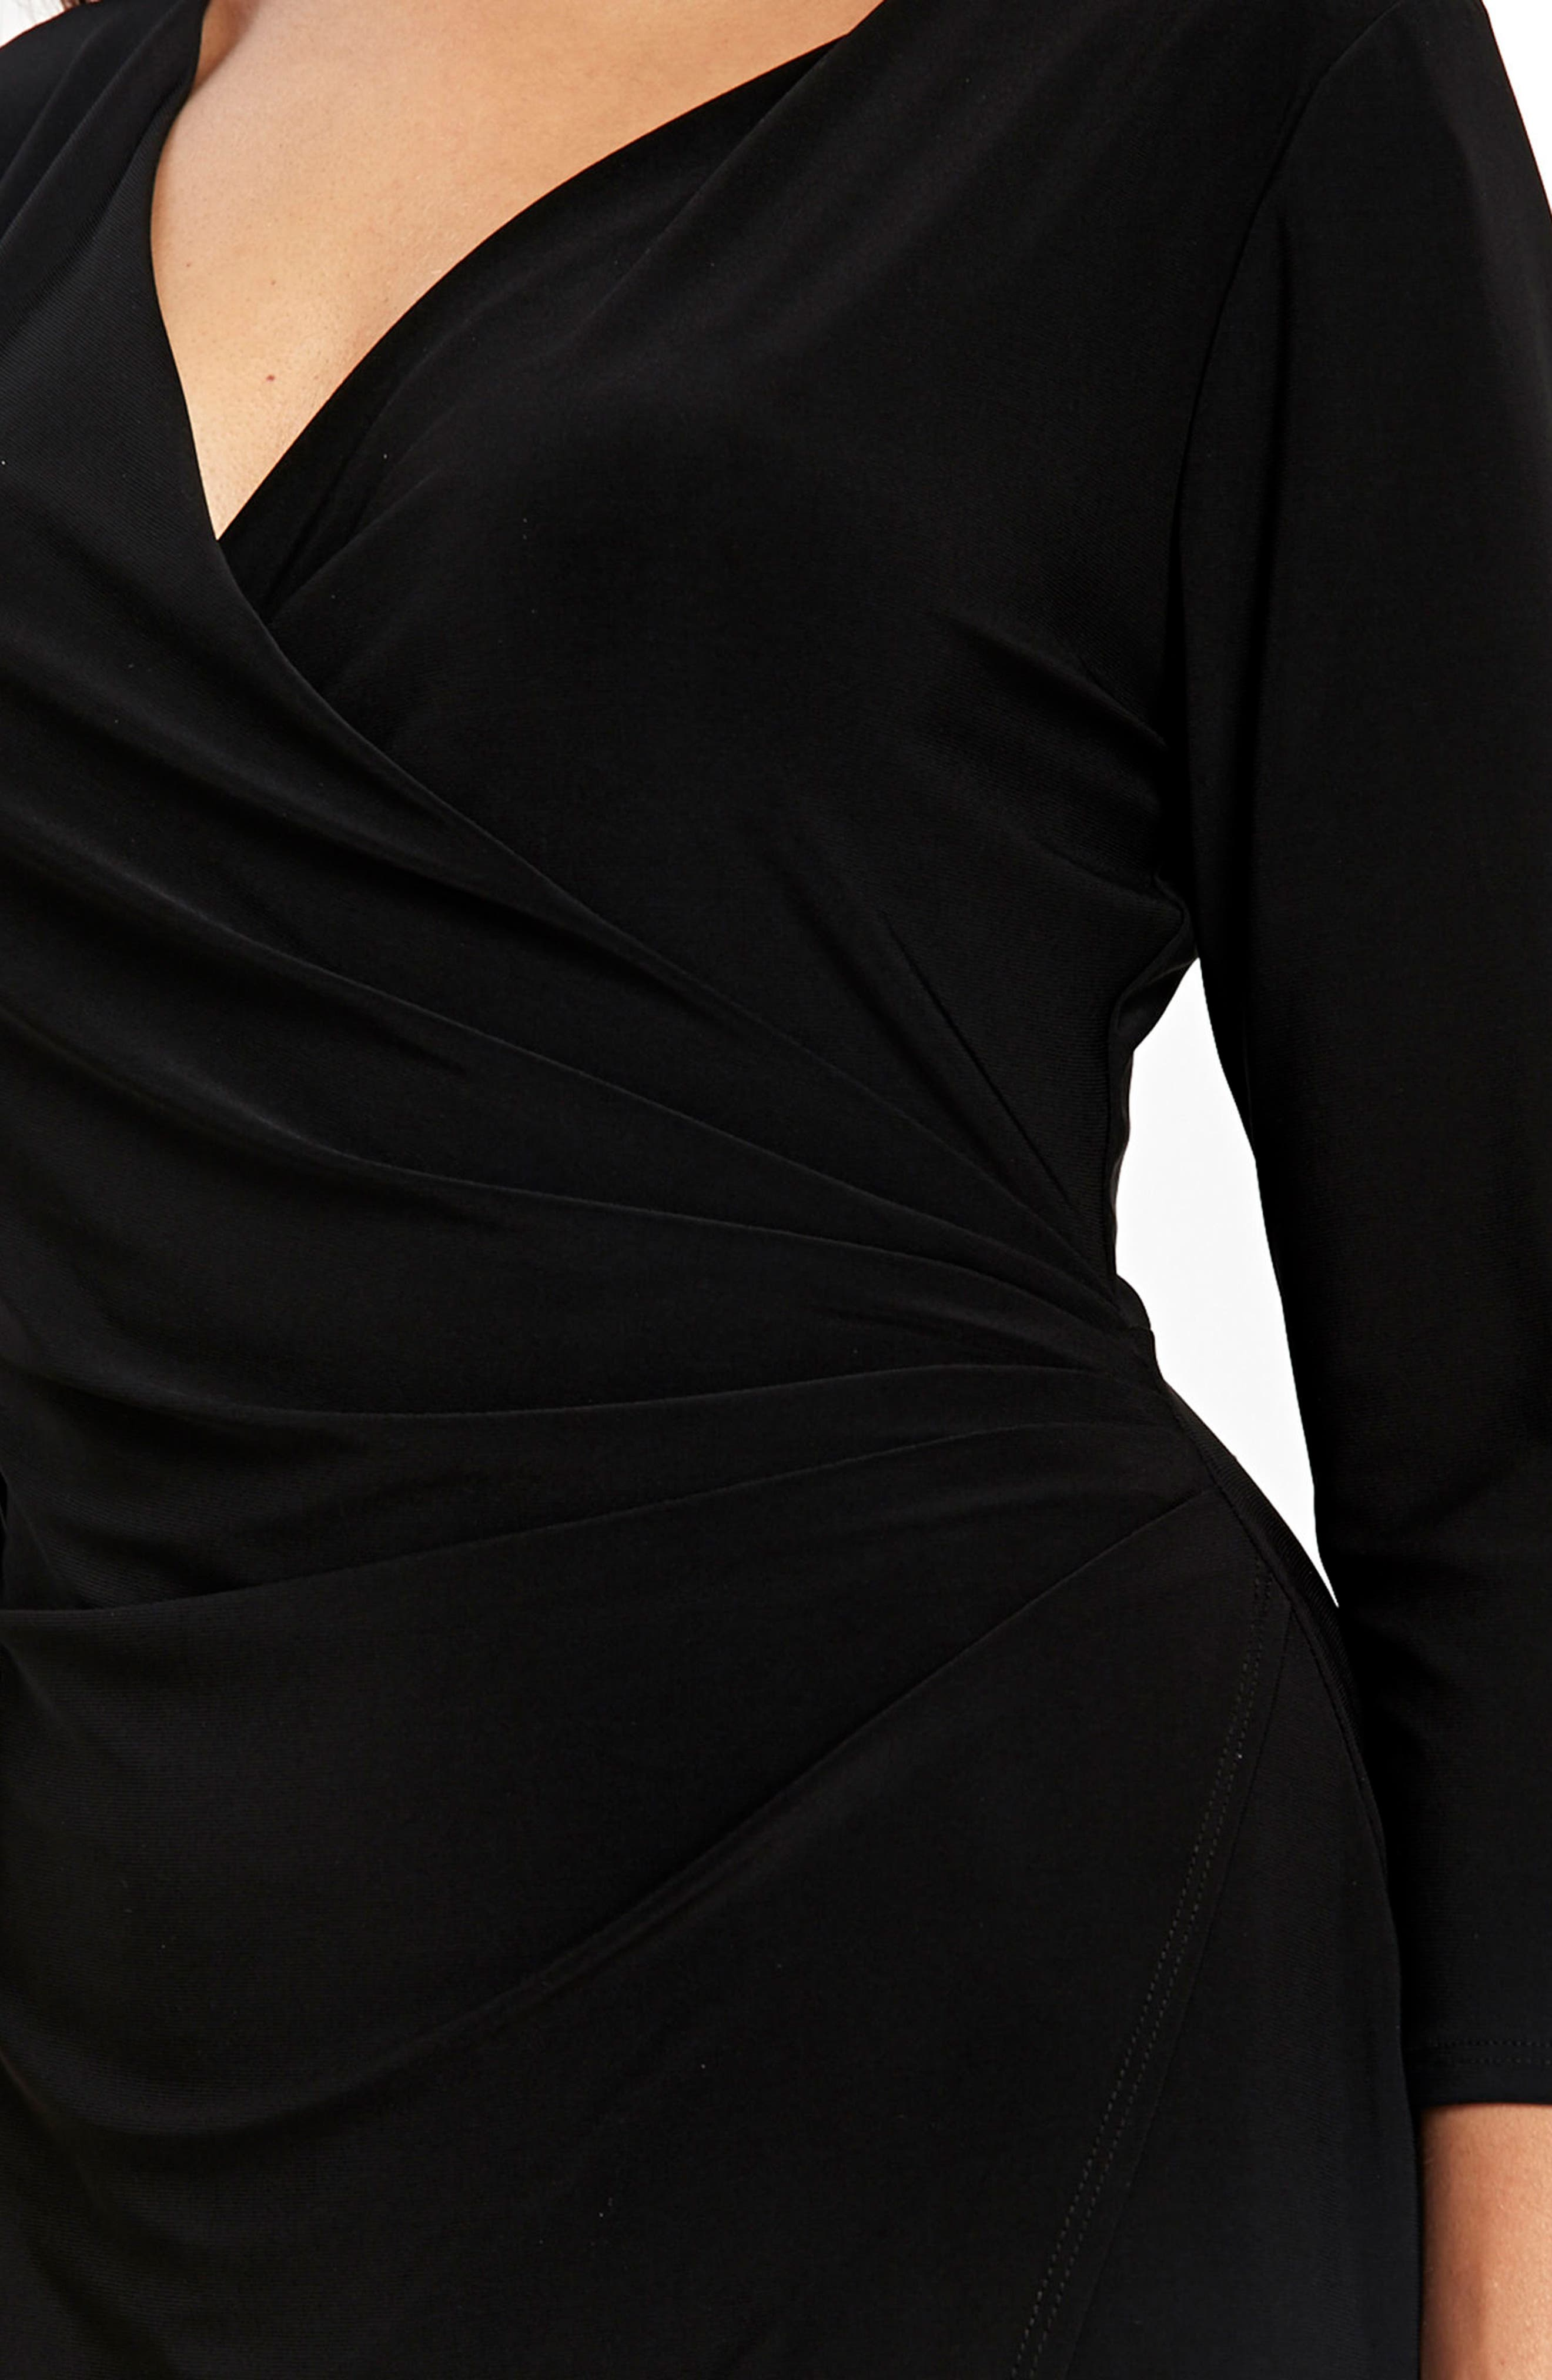 Ity Wrap Dress,                             Alternate thumbnail 3, color,                             001